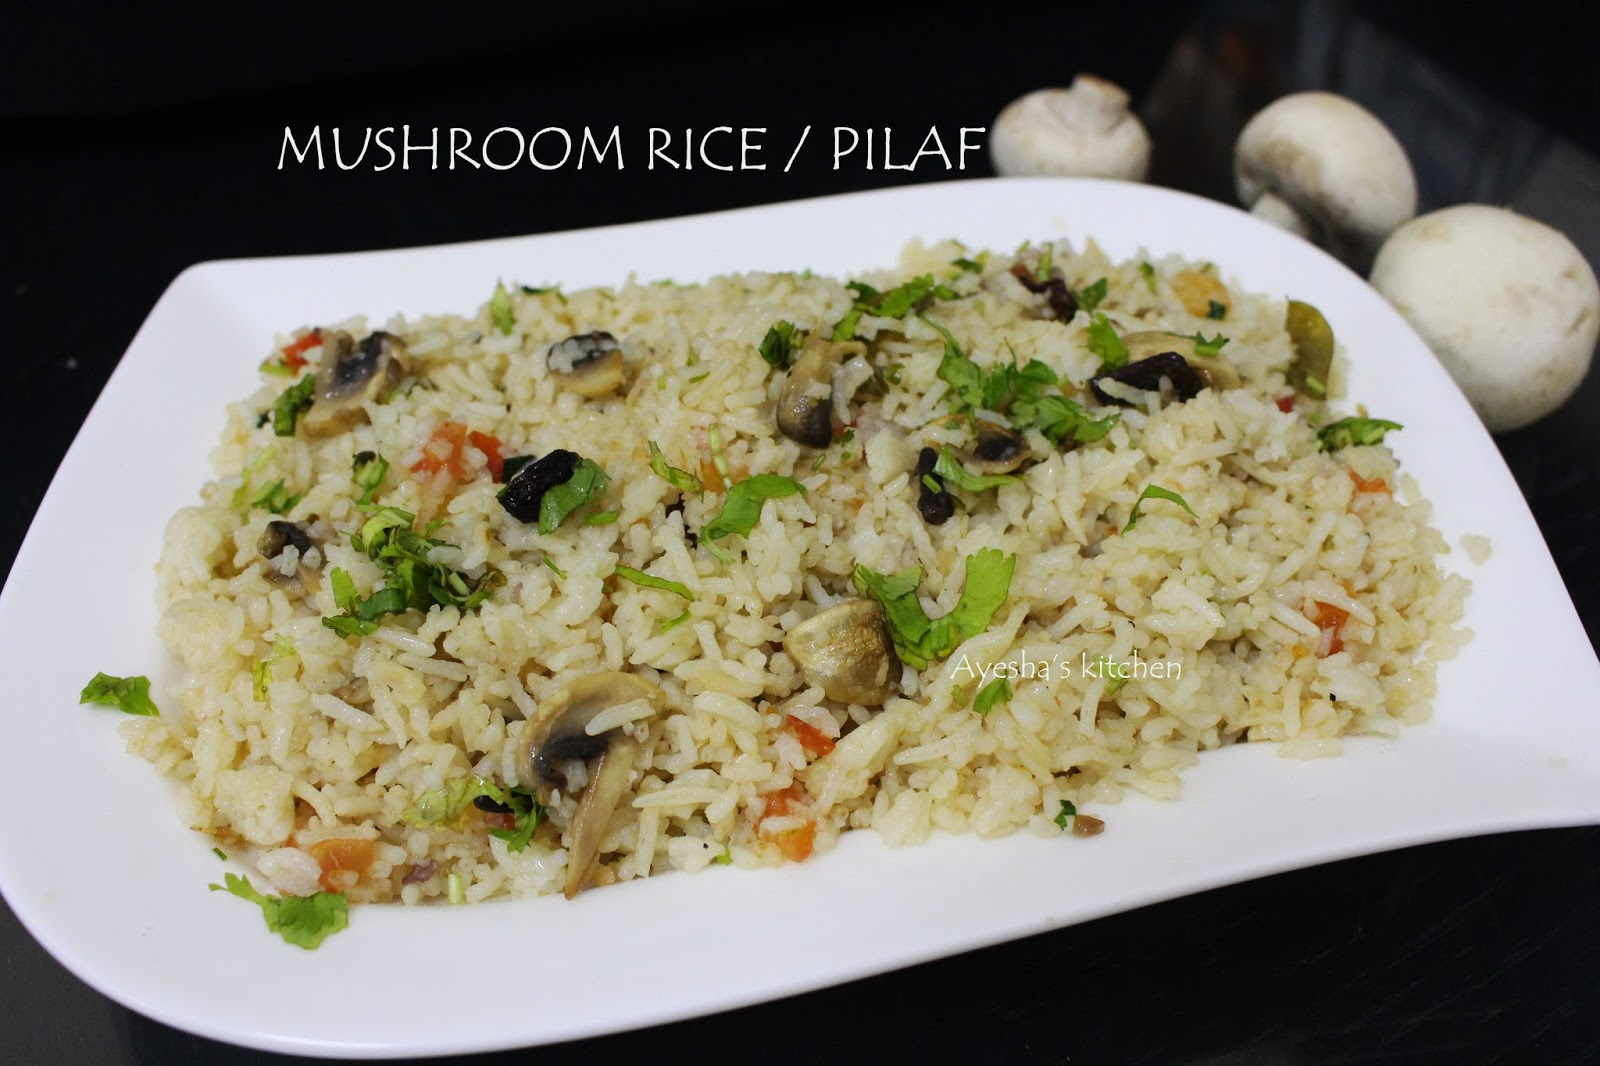 Mushroom pulao mushroom rice recipe here is the recipe showing how to make easy pulao with mushroom how to make veg pulao how to make mushroom rice try this and enjoy ccuart Gallery